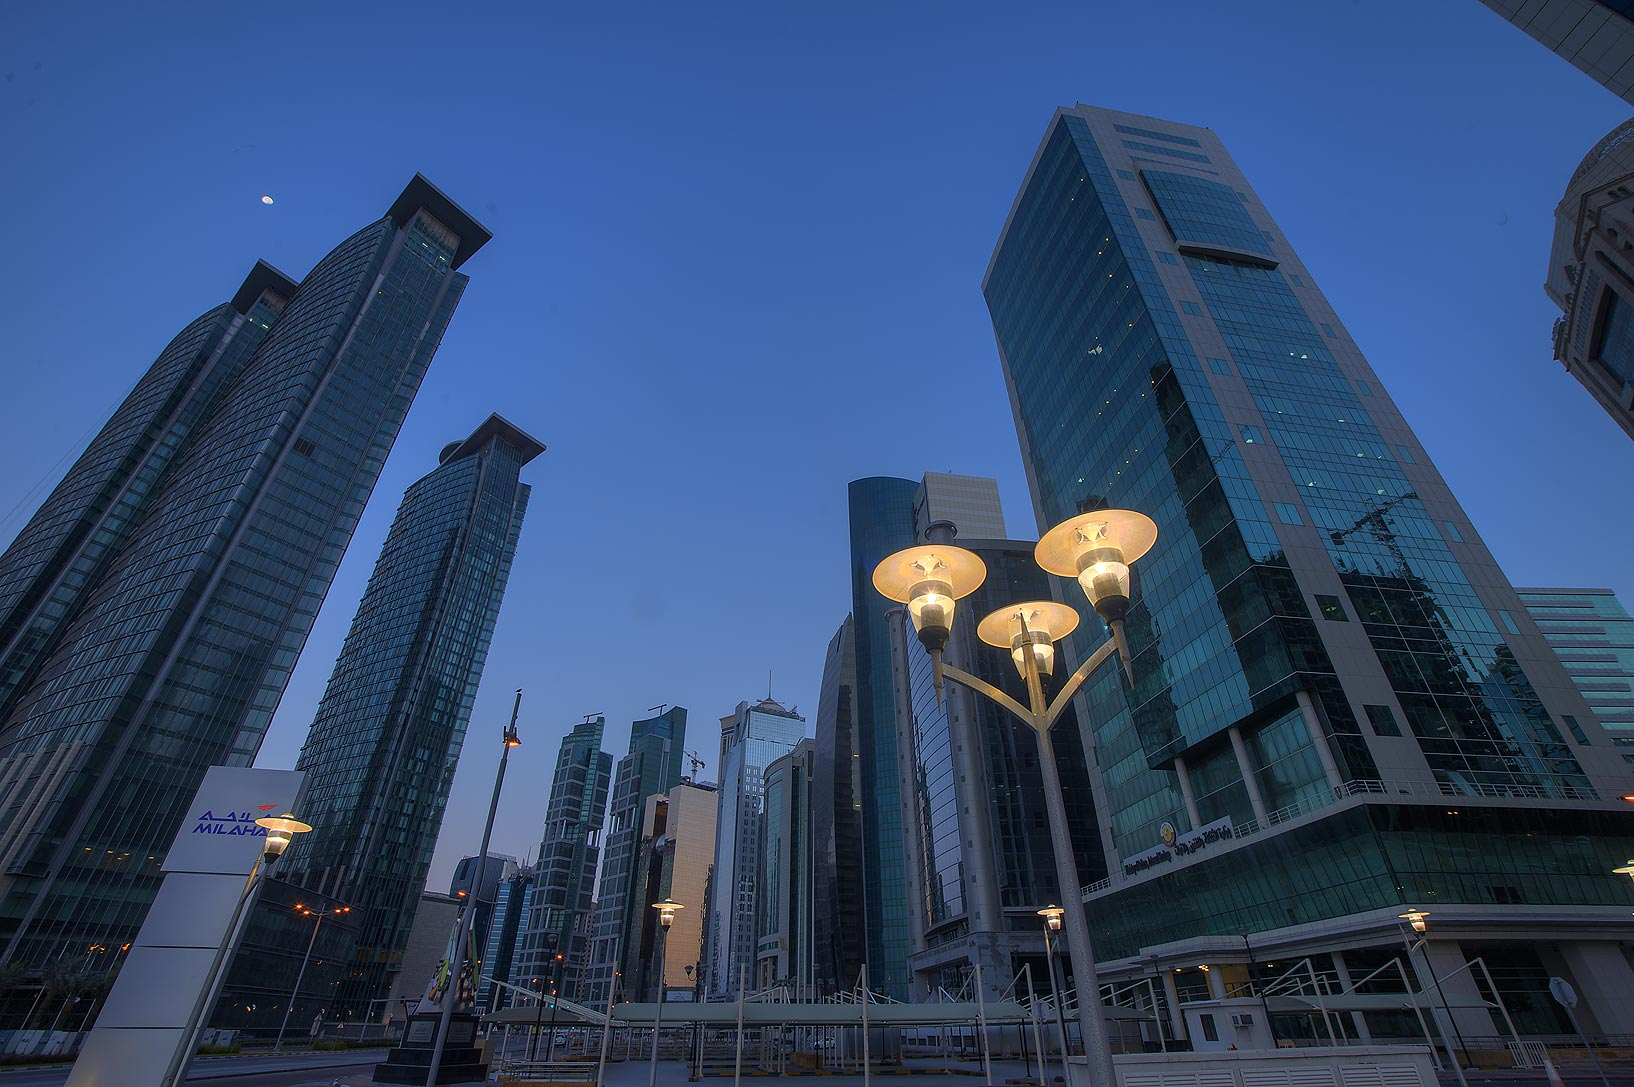 Conference Centre St. in West Bay from Al Dafna Roundabout. Doha, Qatar